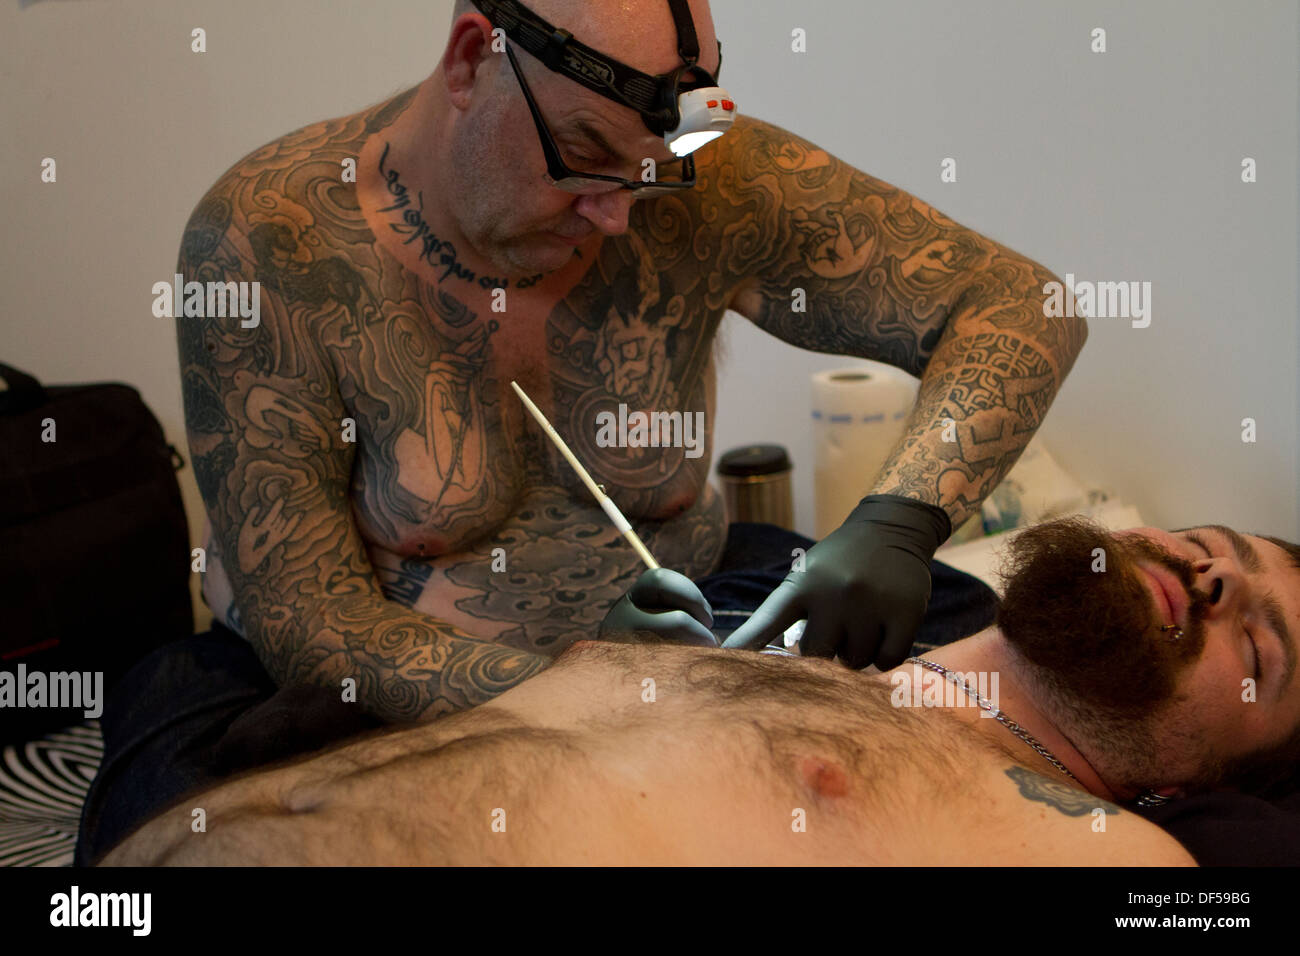 A tattooist creating new tattoo using traditional hand tapping during the Tattoo Convention 2013 in Katowice, Poland. - Stock Image